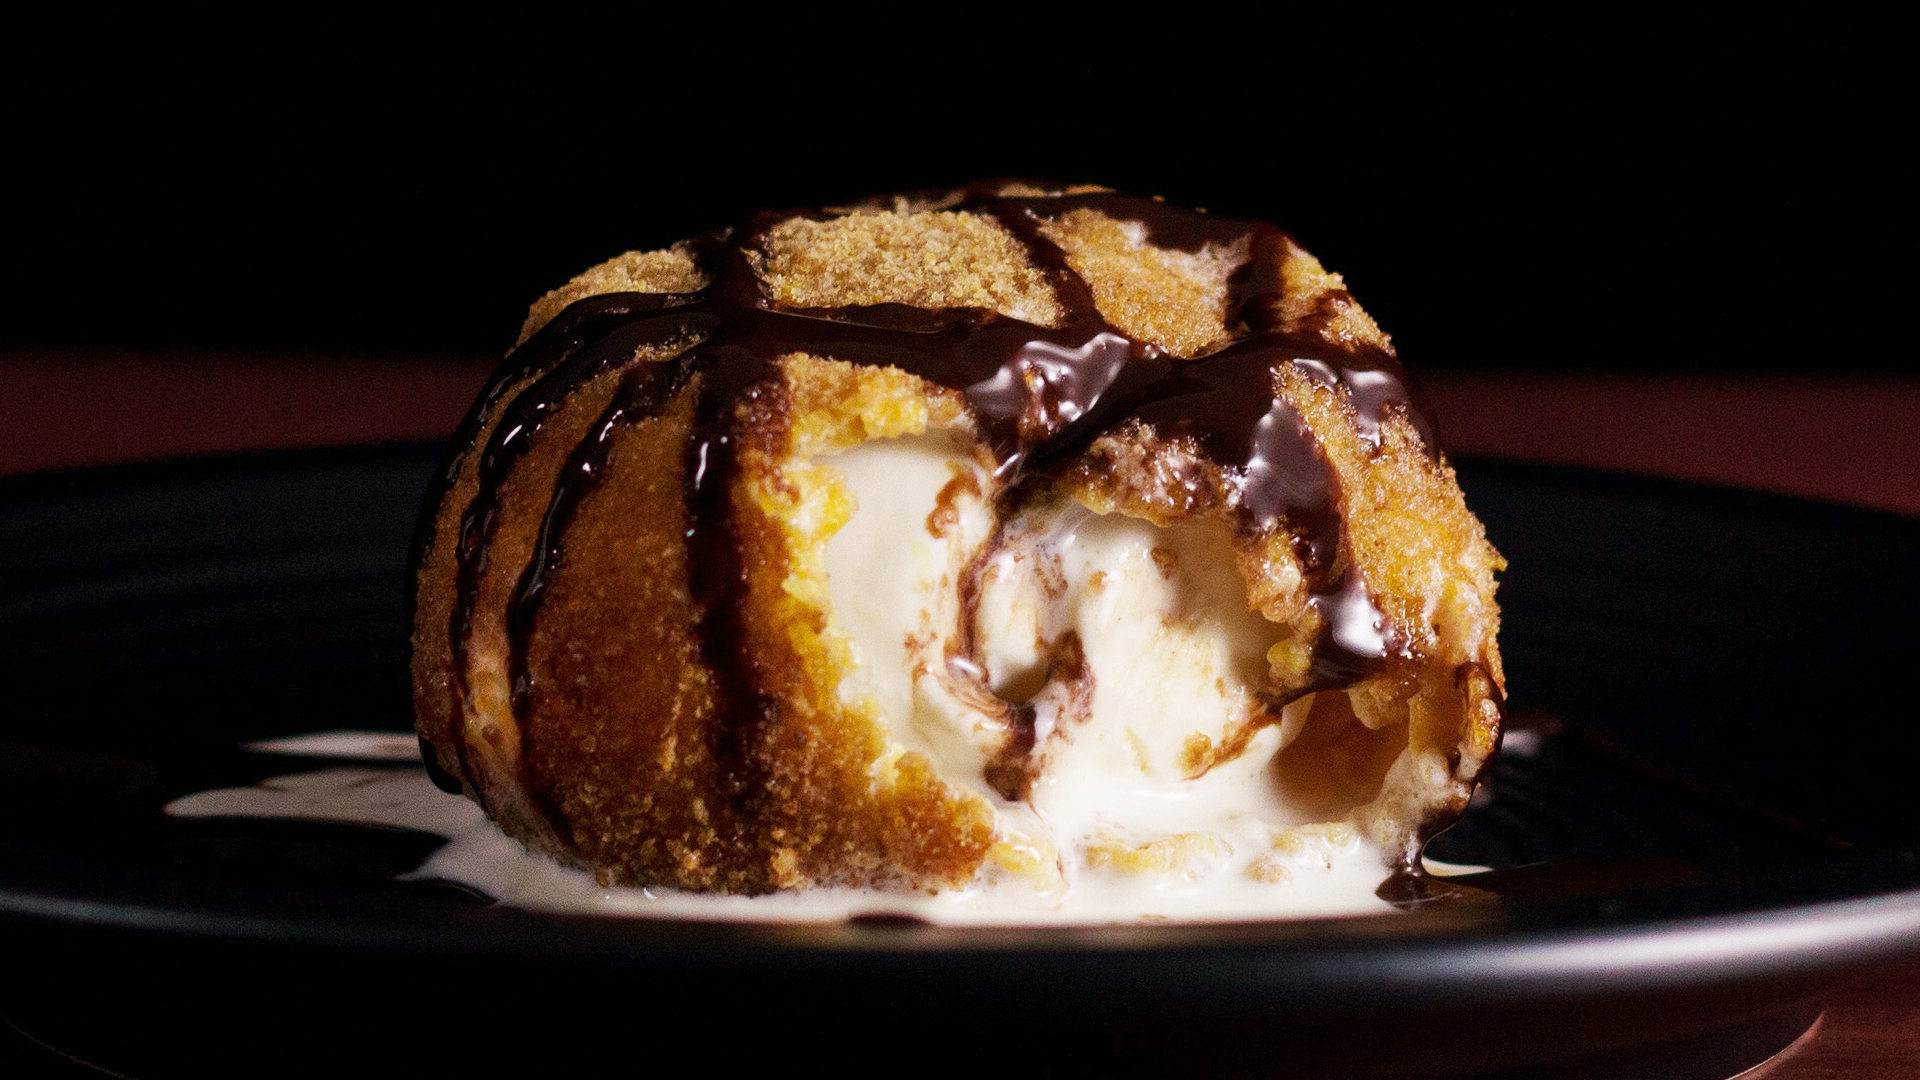 Fried ice cream hungry af tastemade ccuart Choice Image